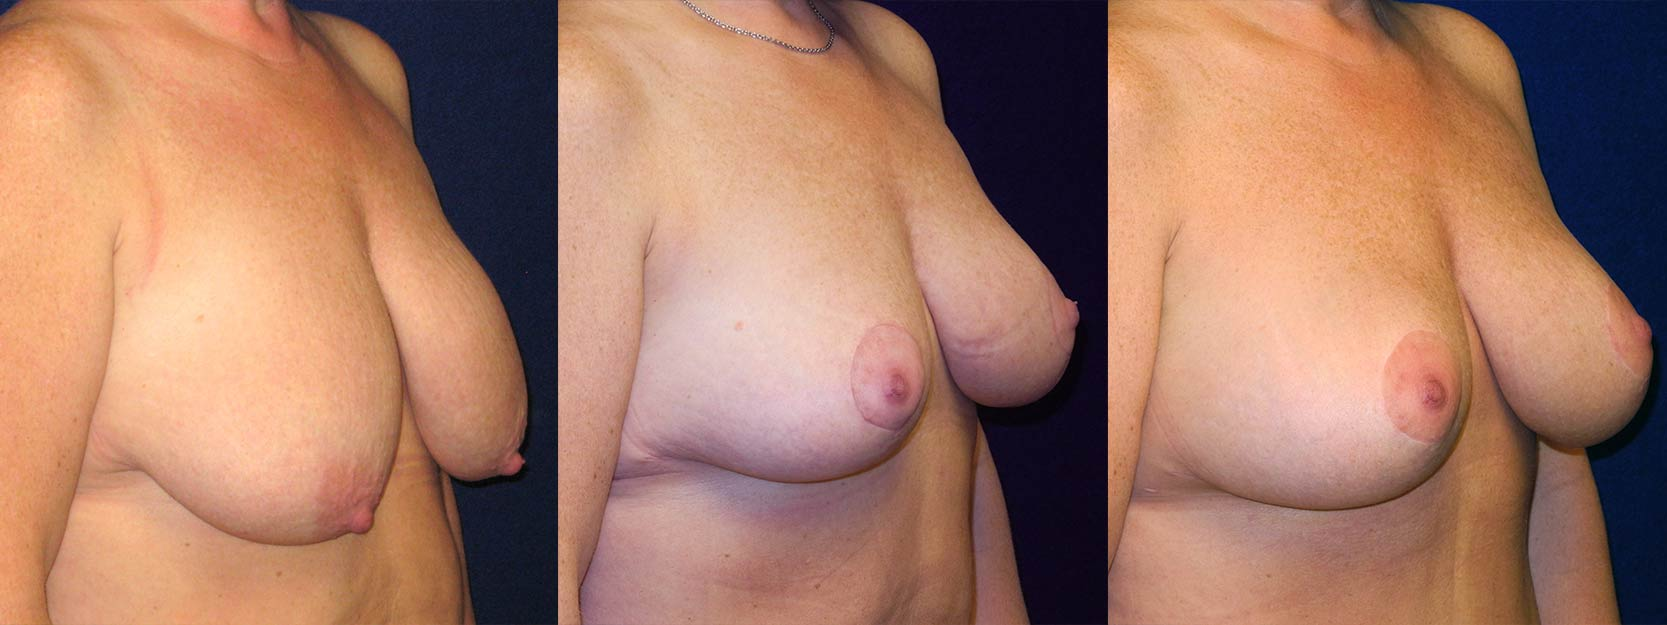 Right 3/4 View - Breast Augmentation with Lift - Silicone Implants